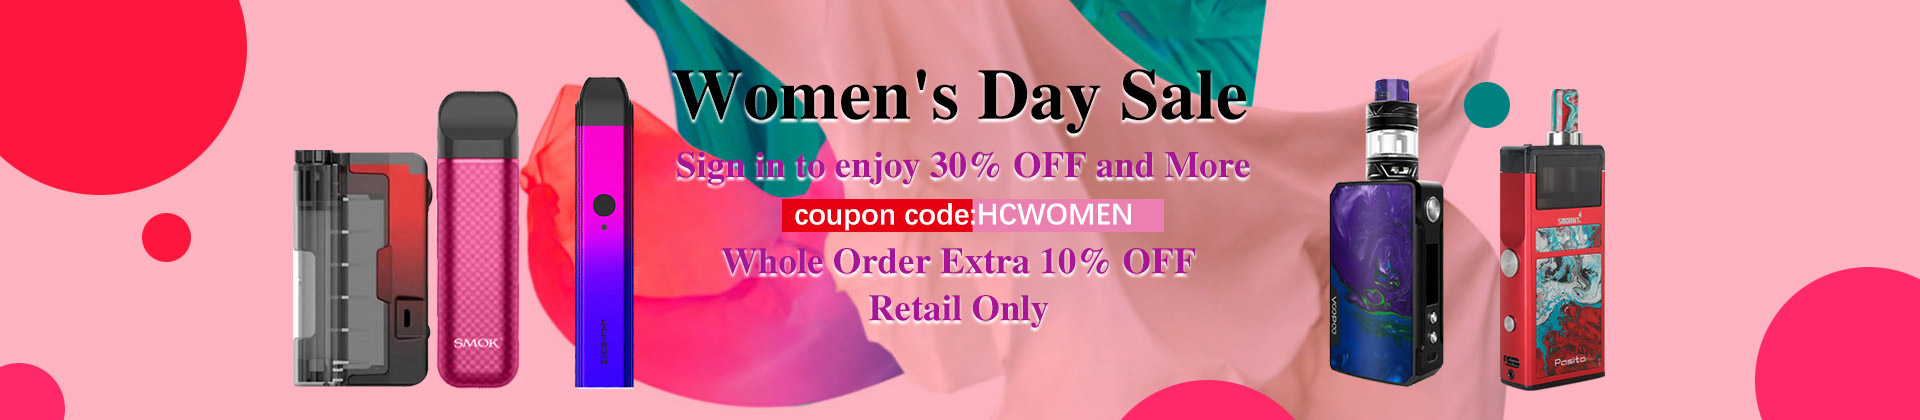 healthcabin - Women's Day Sale – Avail 30% OFF on most products